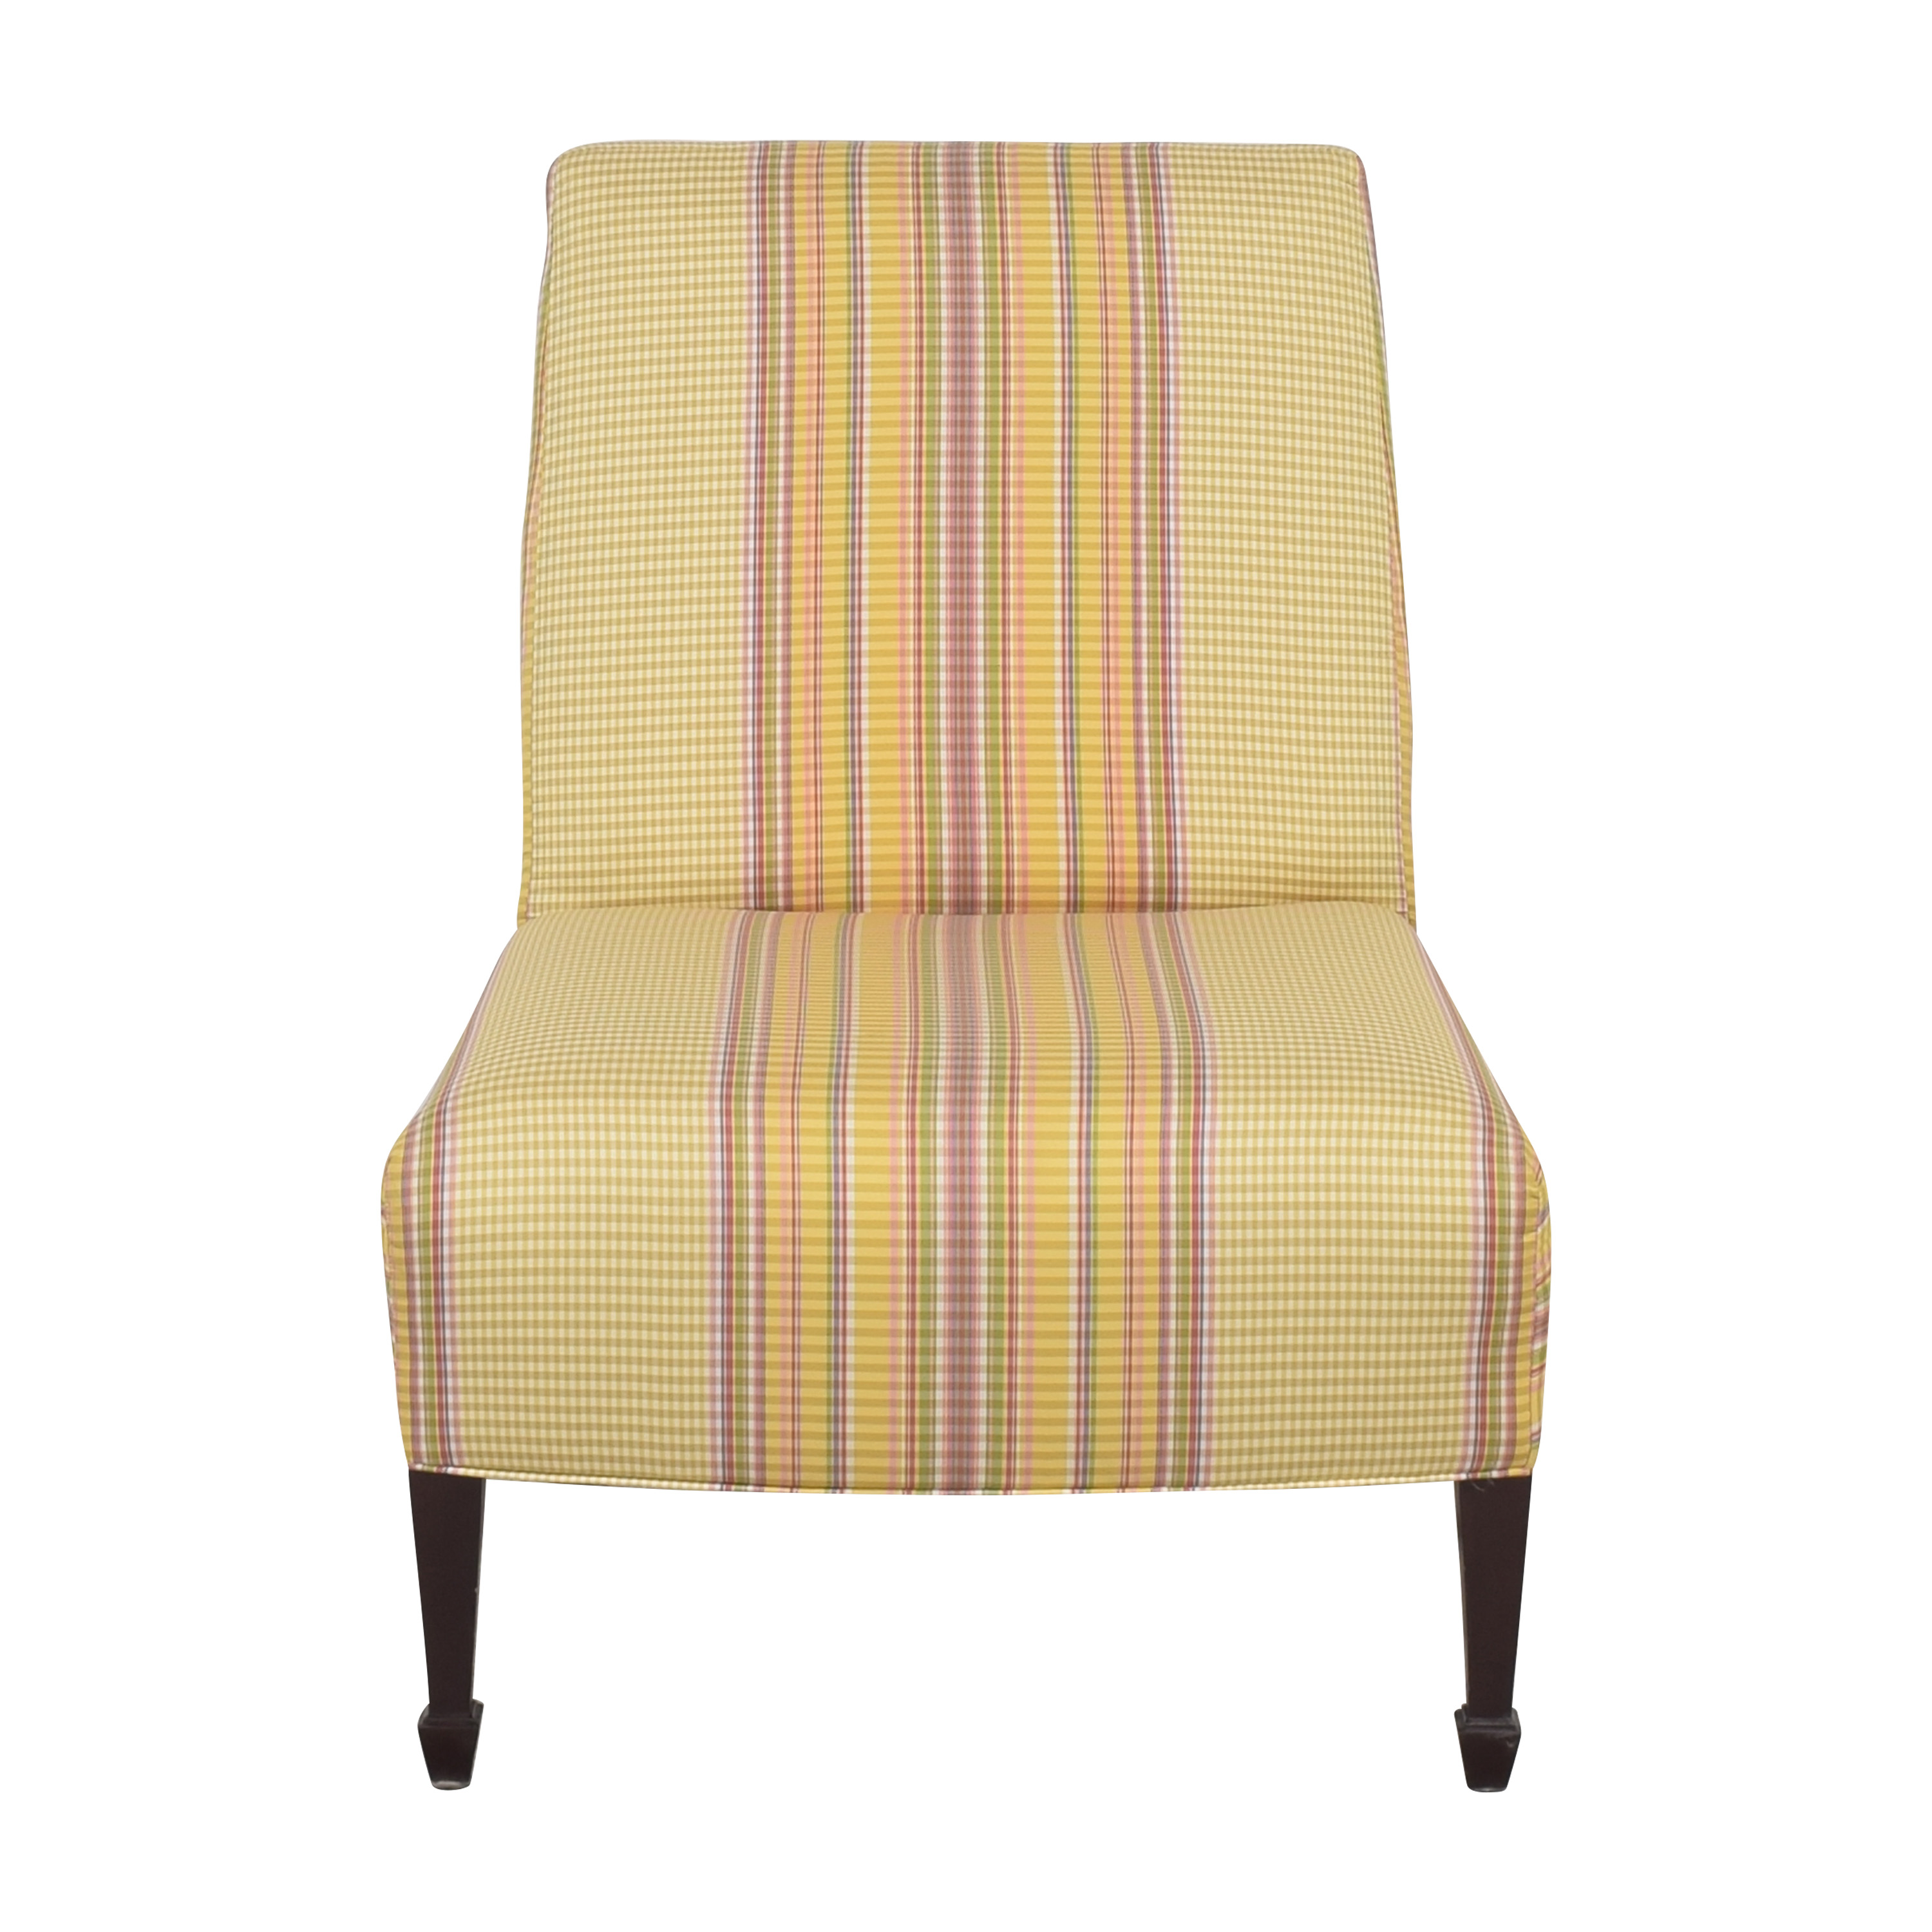 Ferrell Mittman Ferrell Mittman Upholstered Slipper Chair